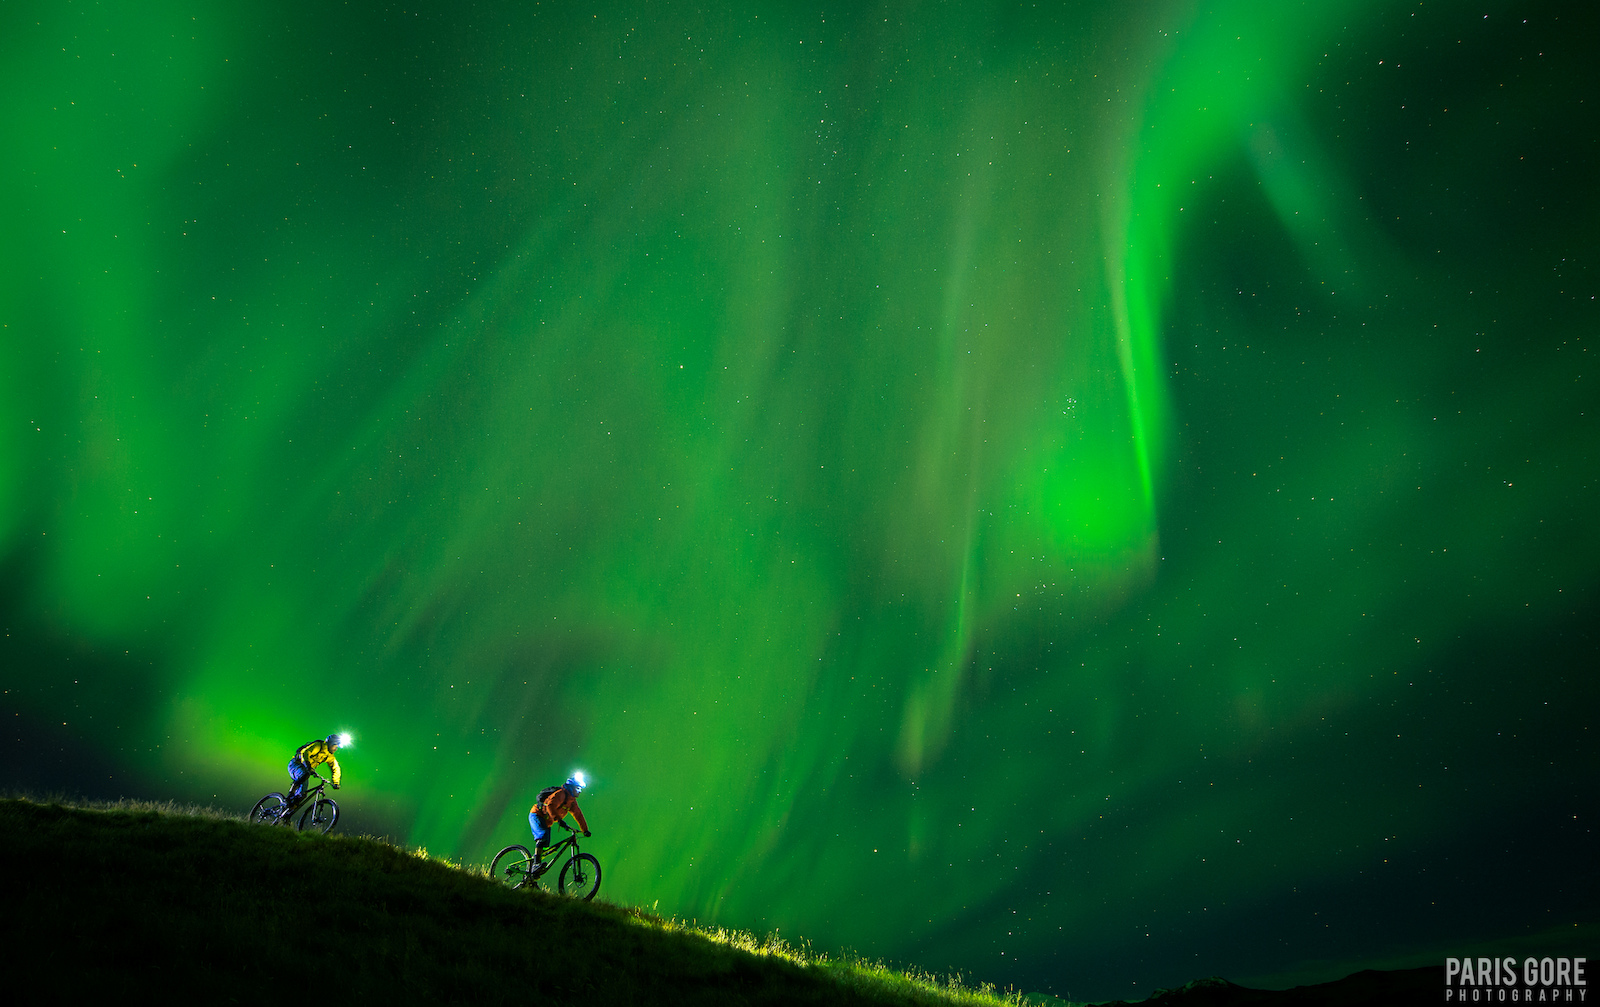 KC Deane and Geoff Gulevich in rsm rk Iceland underneath a spectactular Northern Lights show. The town of Reykjavik even demanded all lights be shut off in the city during this night due to the intensity of the showing here. Our crew went to Iceland with a vision to riding under the Northern Lights and we continually got shut down by weather. We photographed this the last night we were there on a 10 day trip and only saw the lights for two nights at the end of our trip departing our journey beneath a river of green in the skies.